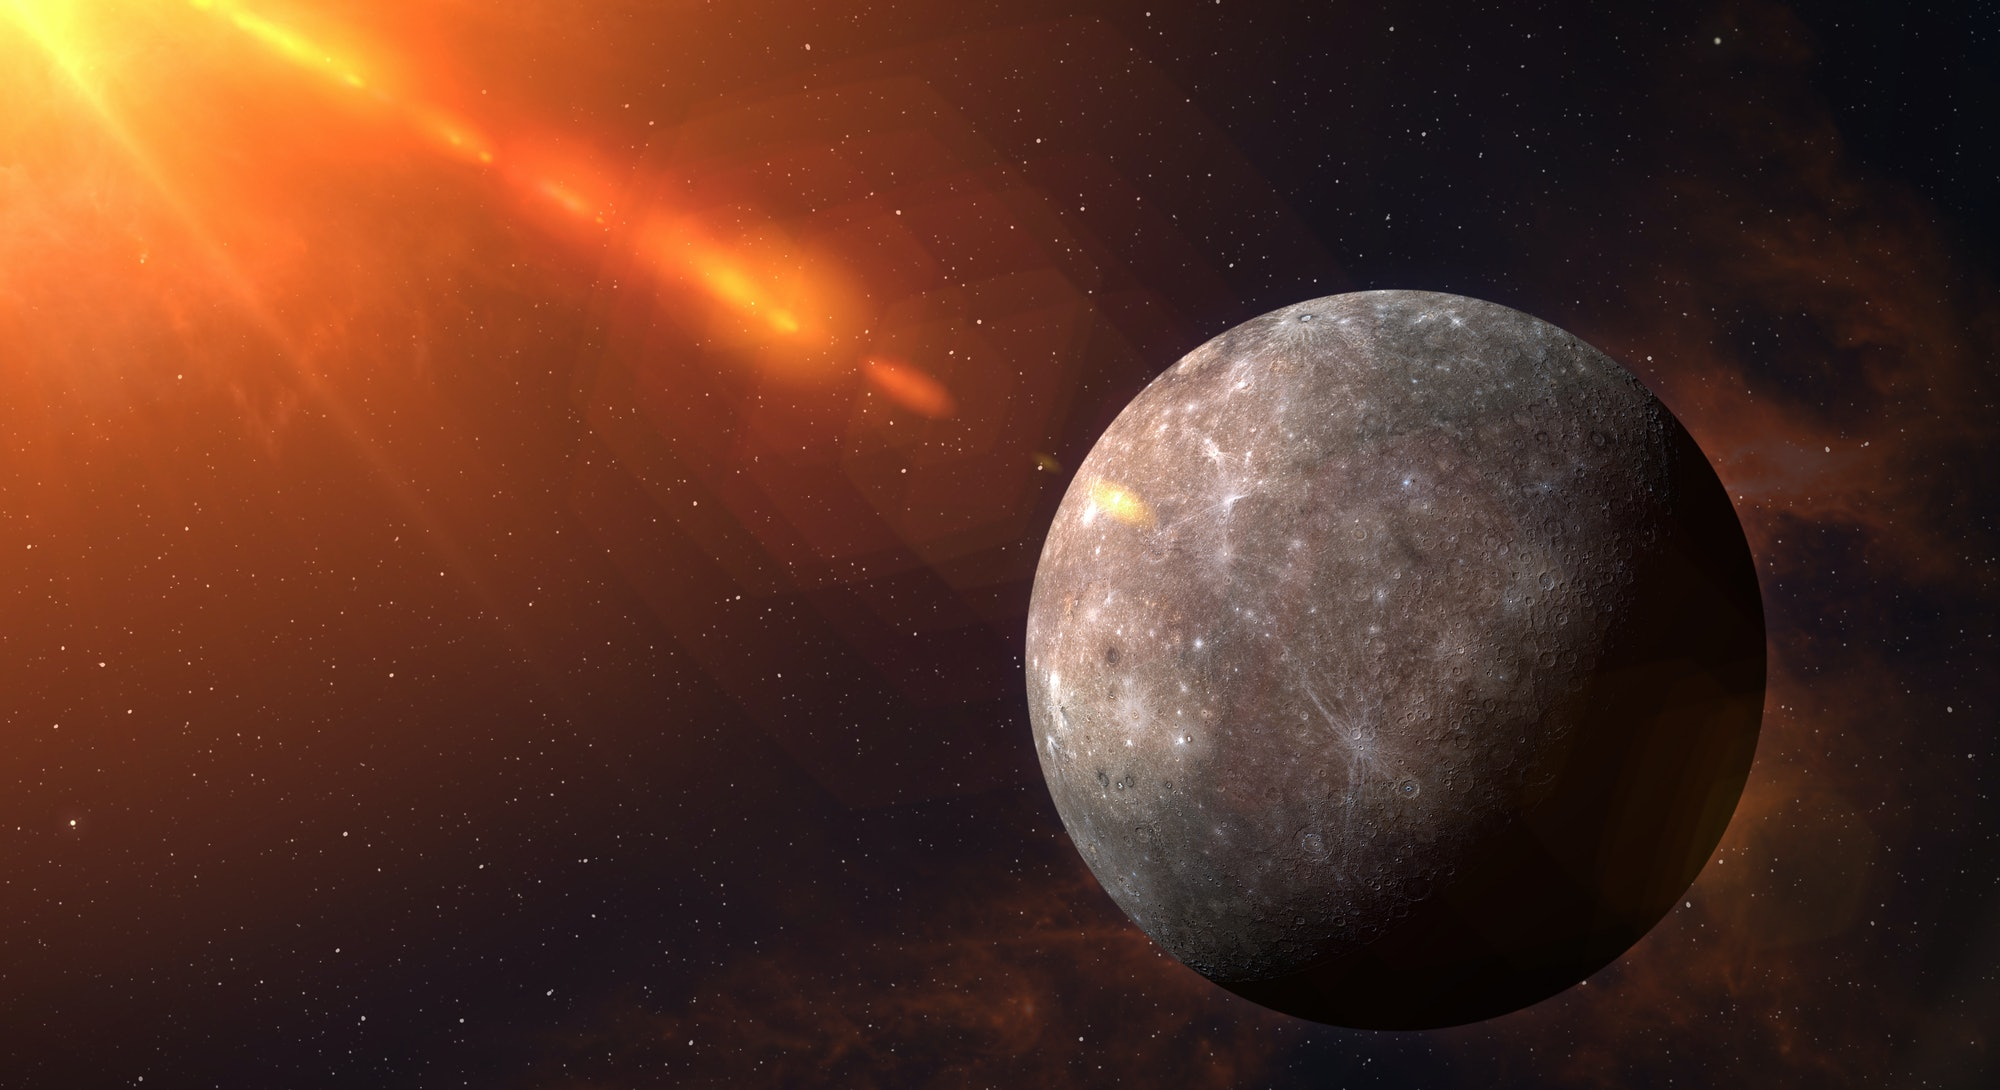 View of planet Mercury from space. Space, nebula and planet Mercury. This image elements furnished by NASA.